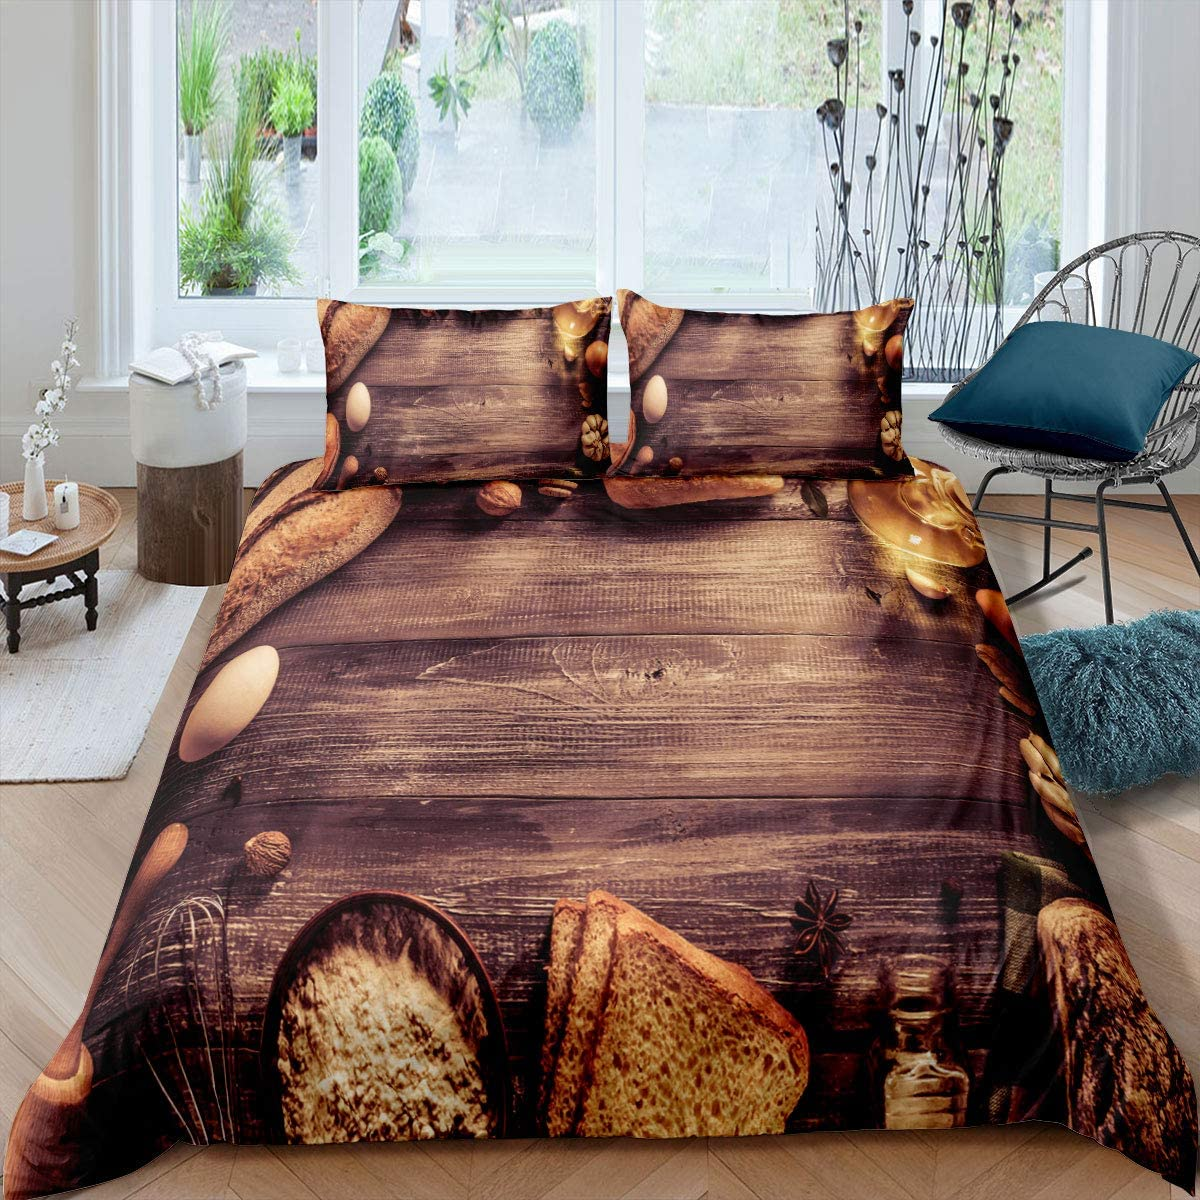 Erosebridal Vintage Bedding Set Queen Size Food Pattern Decor Duvet Cover with Zipper Ties Soft Microfiber Brown Comforter Cover for Adult Women Men Retro Theme Farmhouse Decor Bedspread Cover